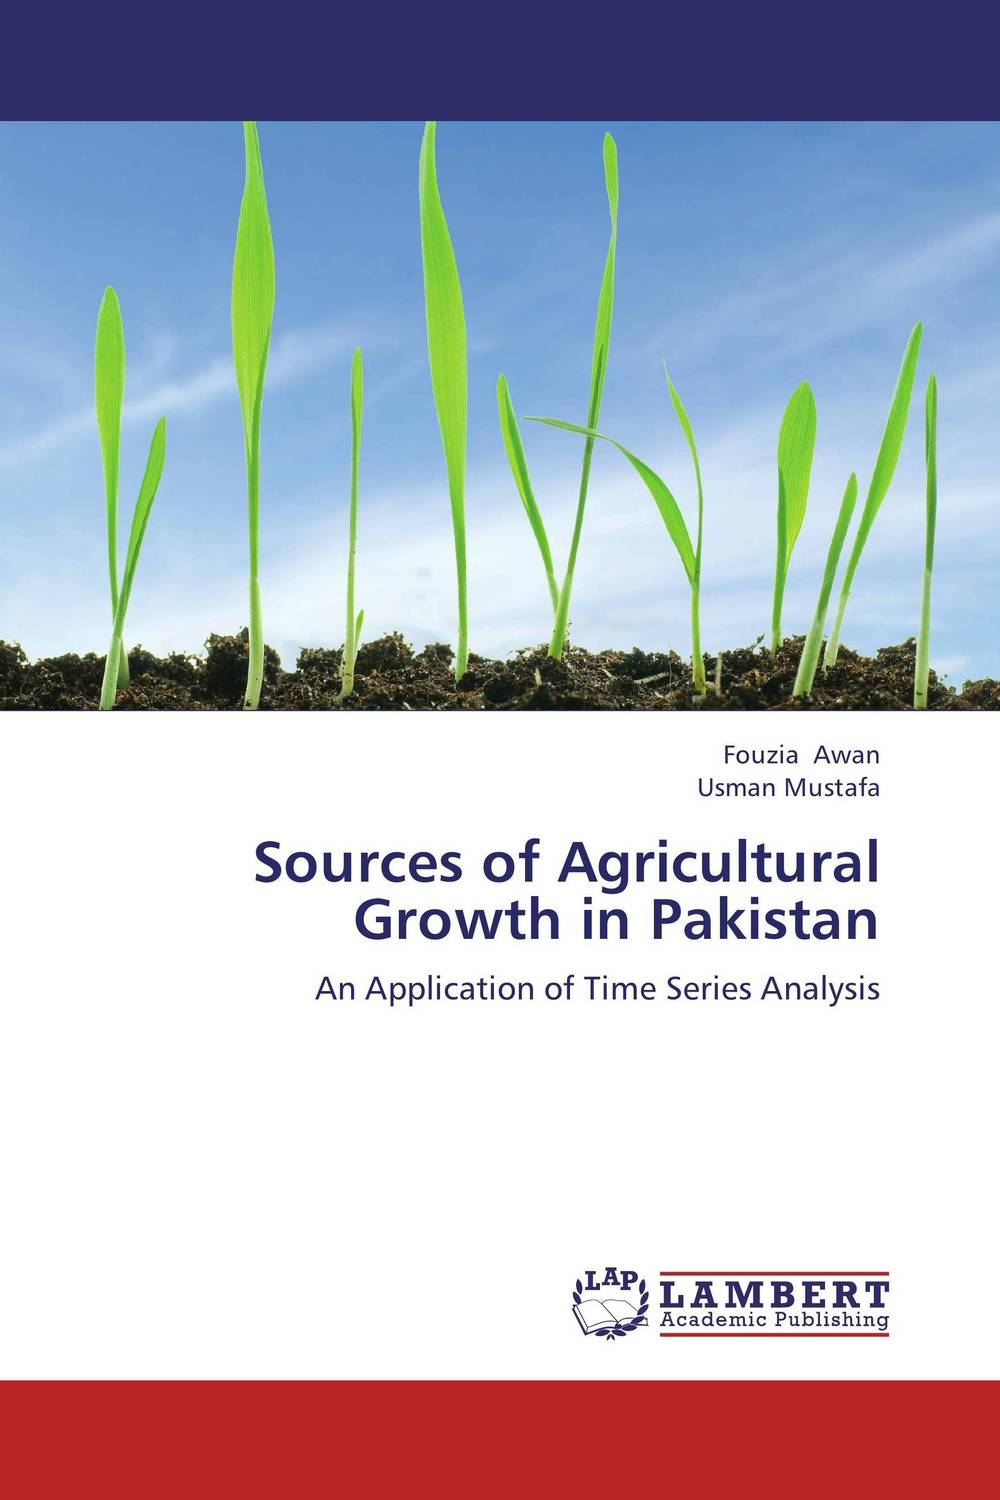 Sources of Agricultural Growth in Pakistan